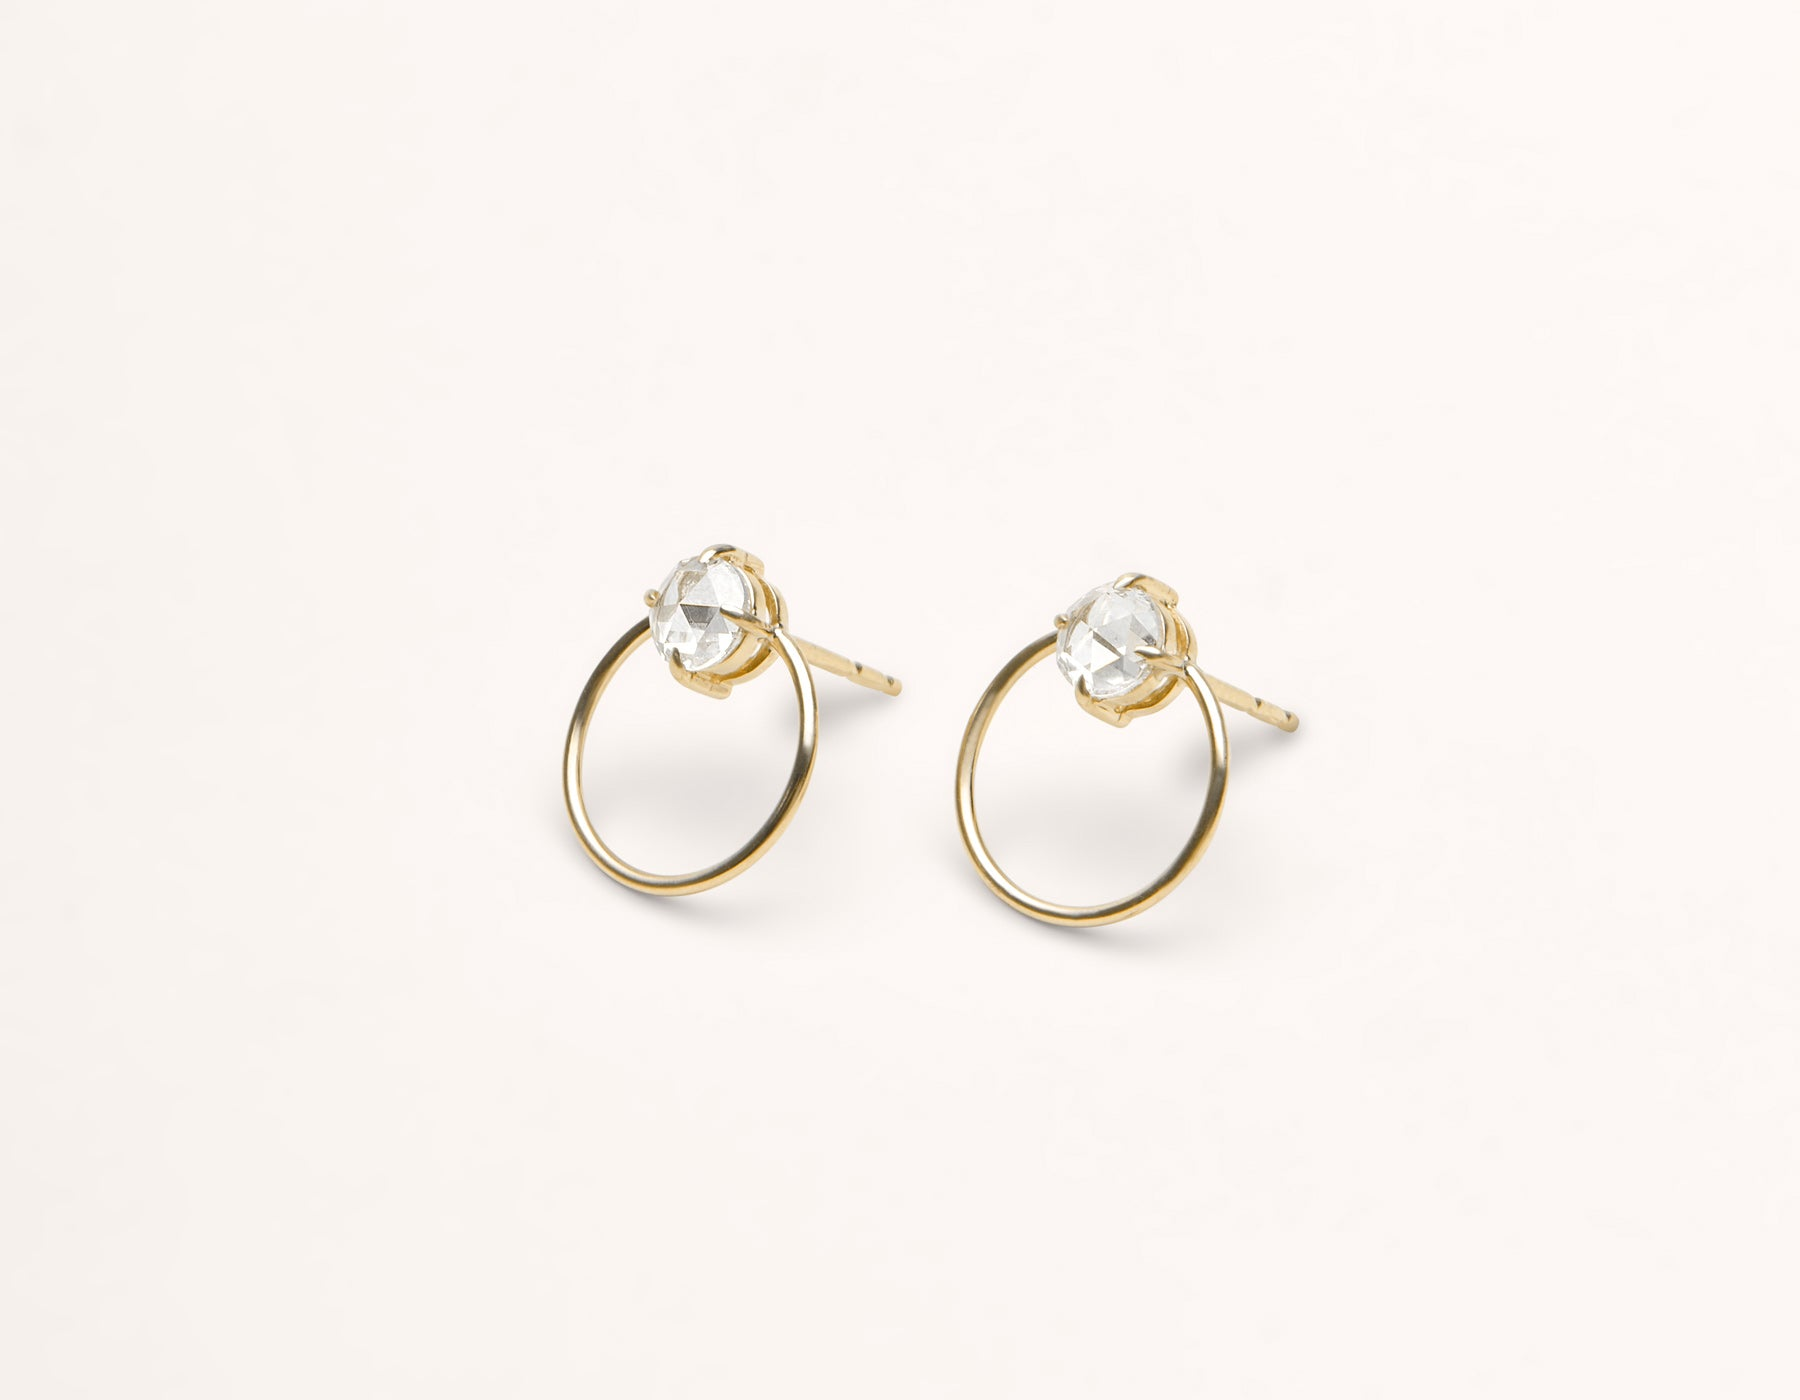 simple classic 18k solid gold .5 carat round Diamond Door Knocker hoop earring stud by Vrai and Oro black label minimalist jewelry, 18K Yellow Gold